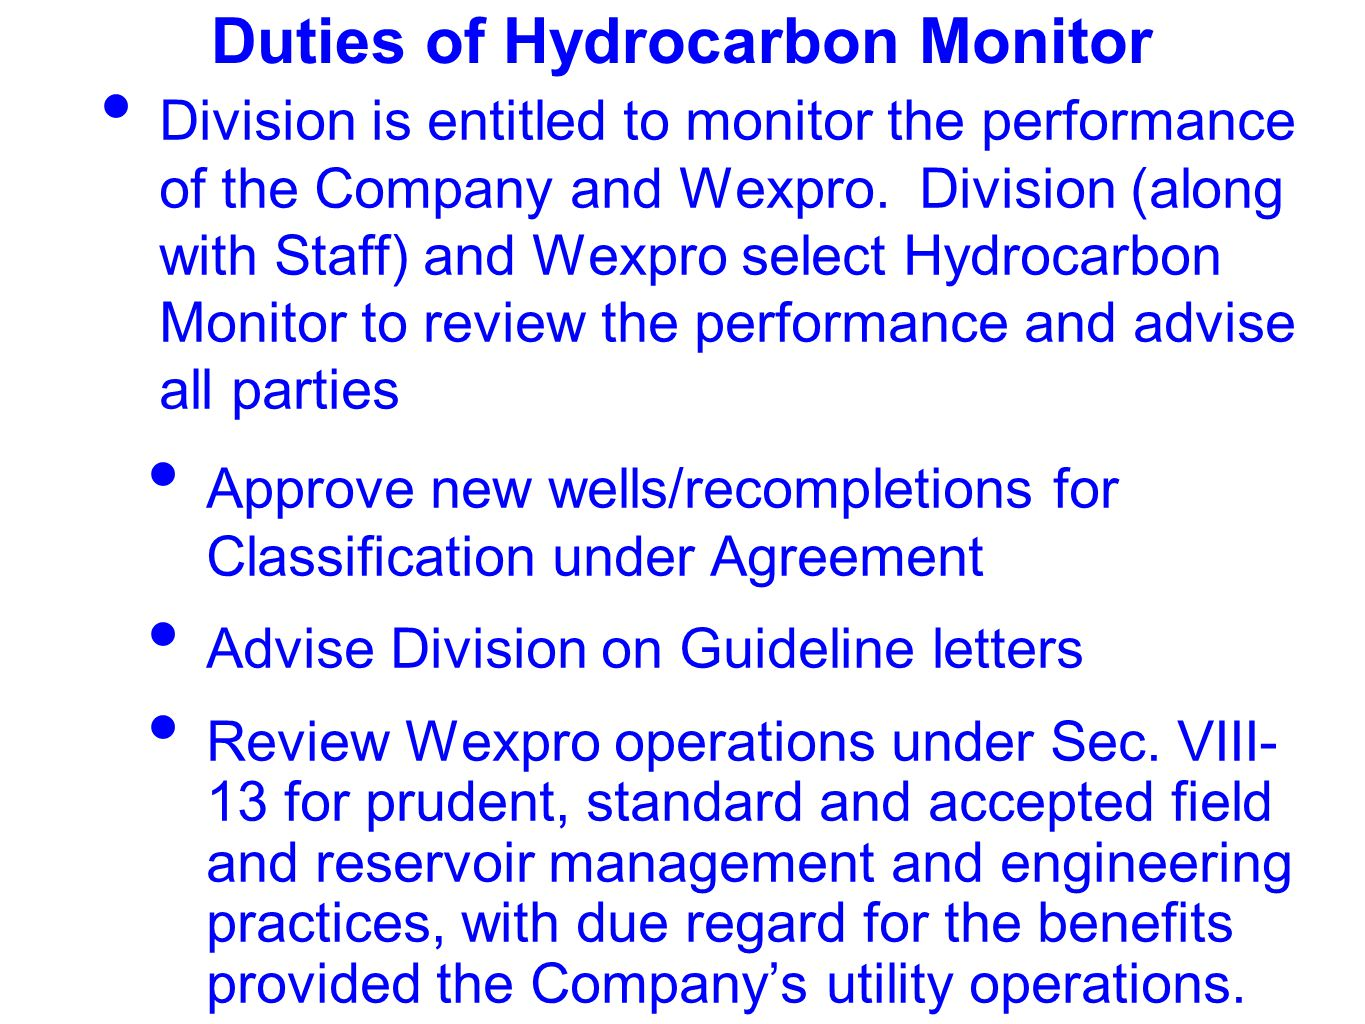 Duties of Hydrocarbon Monitor Division is entitled to monitor the performance of the Company and Wexpro.